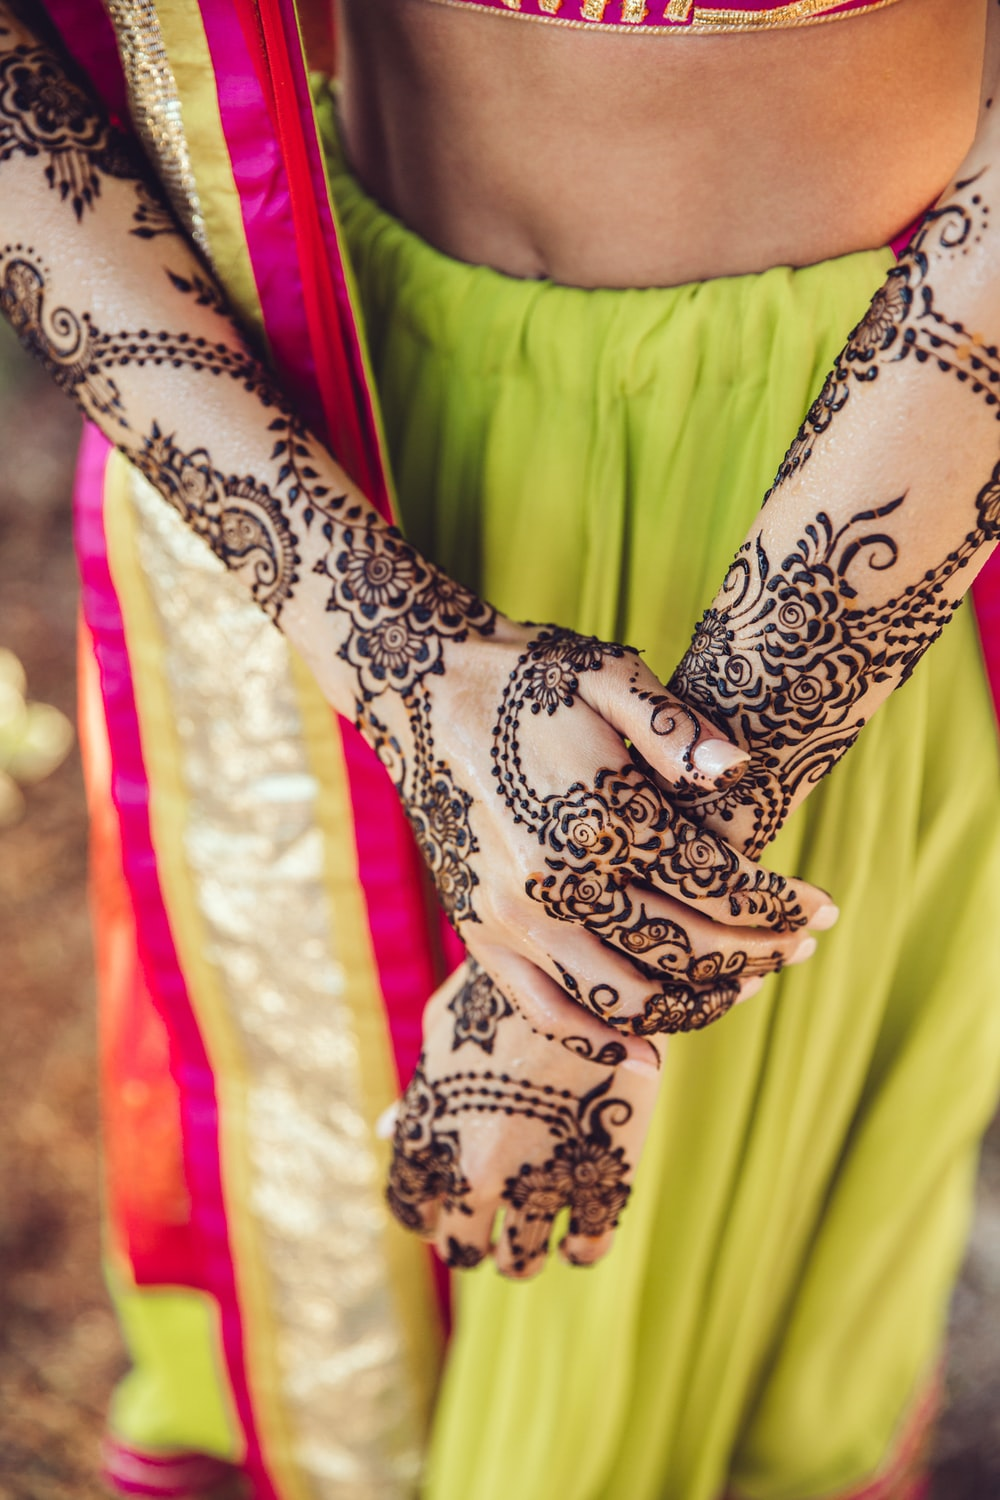 100 Indian Wedding Pictures Hd Download Free Images On Unsplash